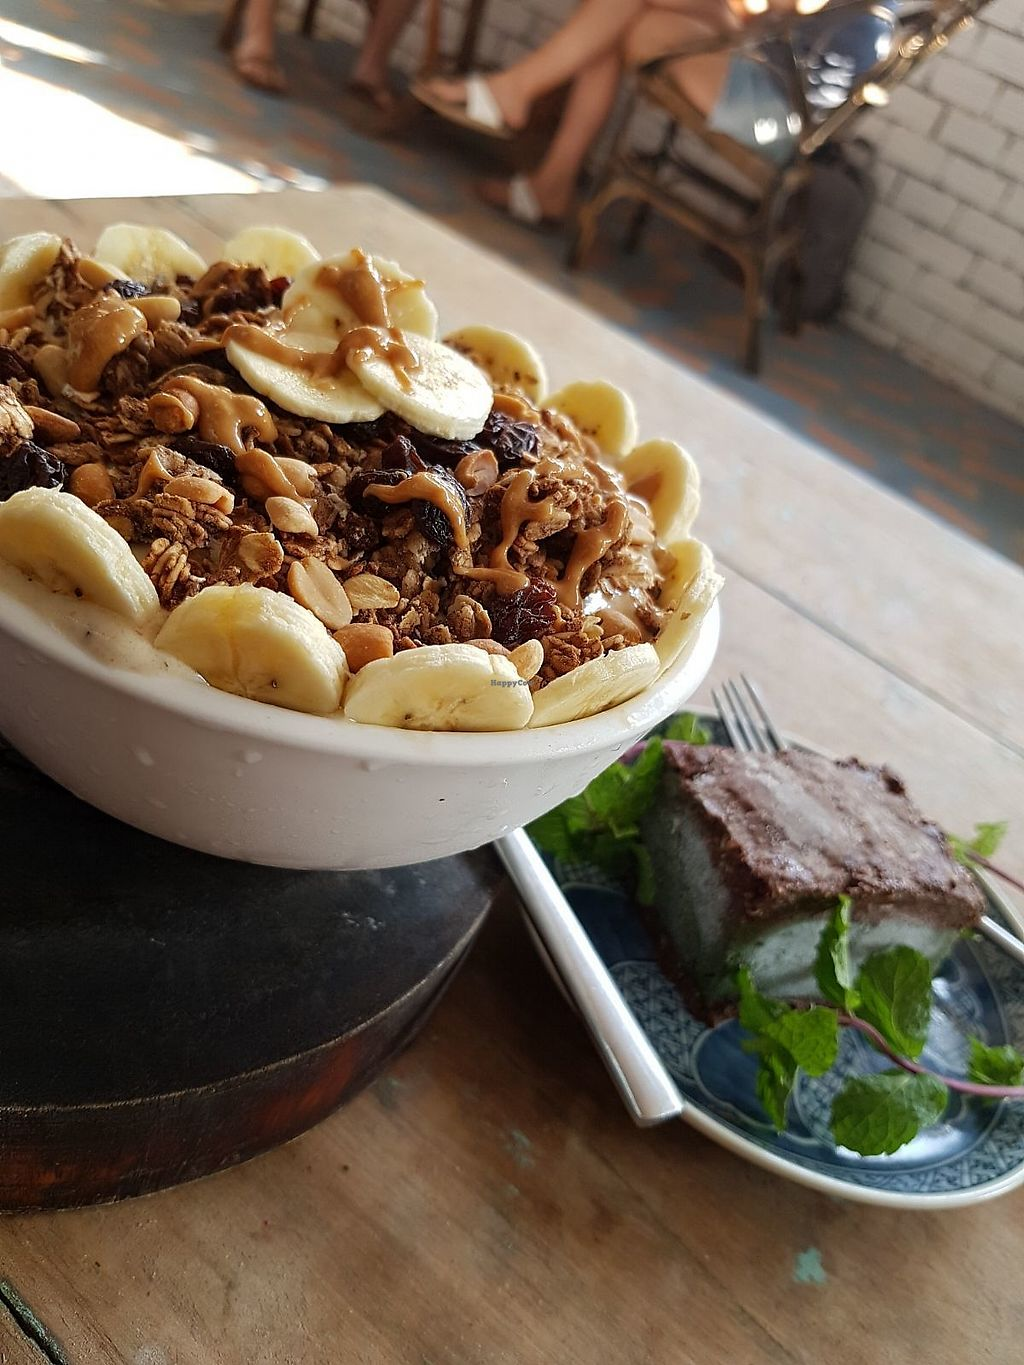 """Photo of Peace Food Cafe  by <a href=""""/members/profile/vegatleticas"""">vegatleticas</a> <br/>Peanut banana smoothie bowl ? <br/> February 22, 2018  - <a href='/contact/abuse/image/83116/362429'>Report</a>"""